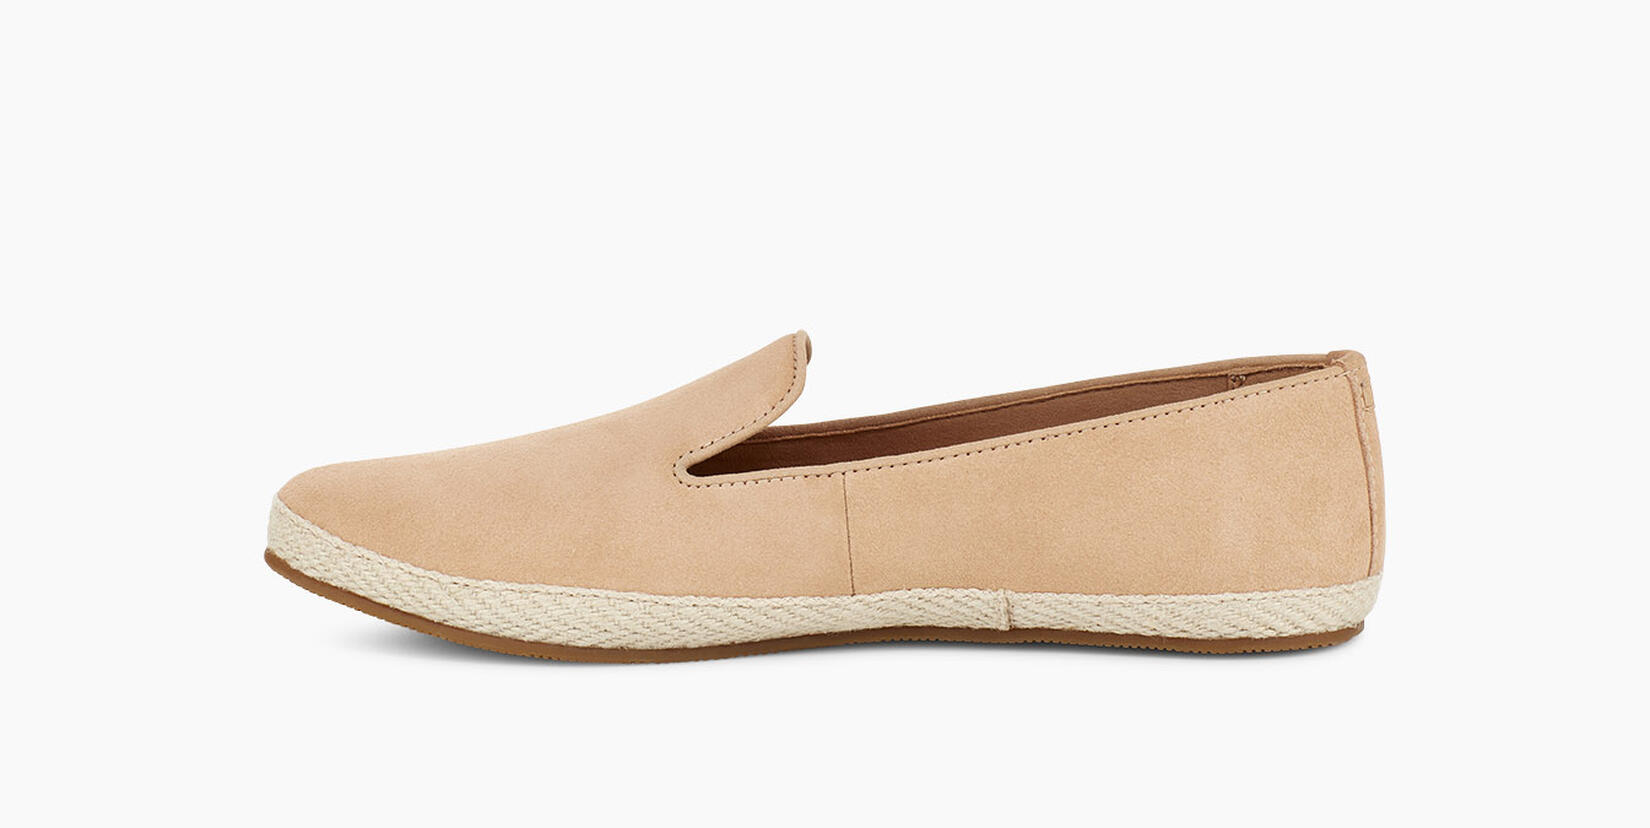 Camryn Loafer